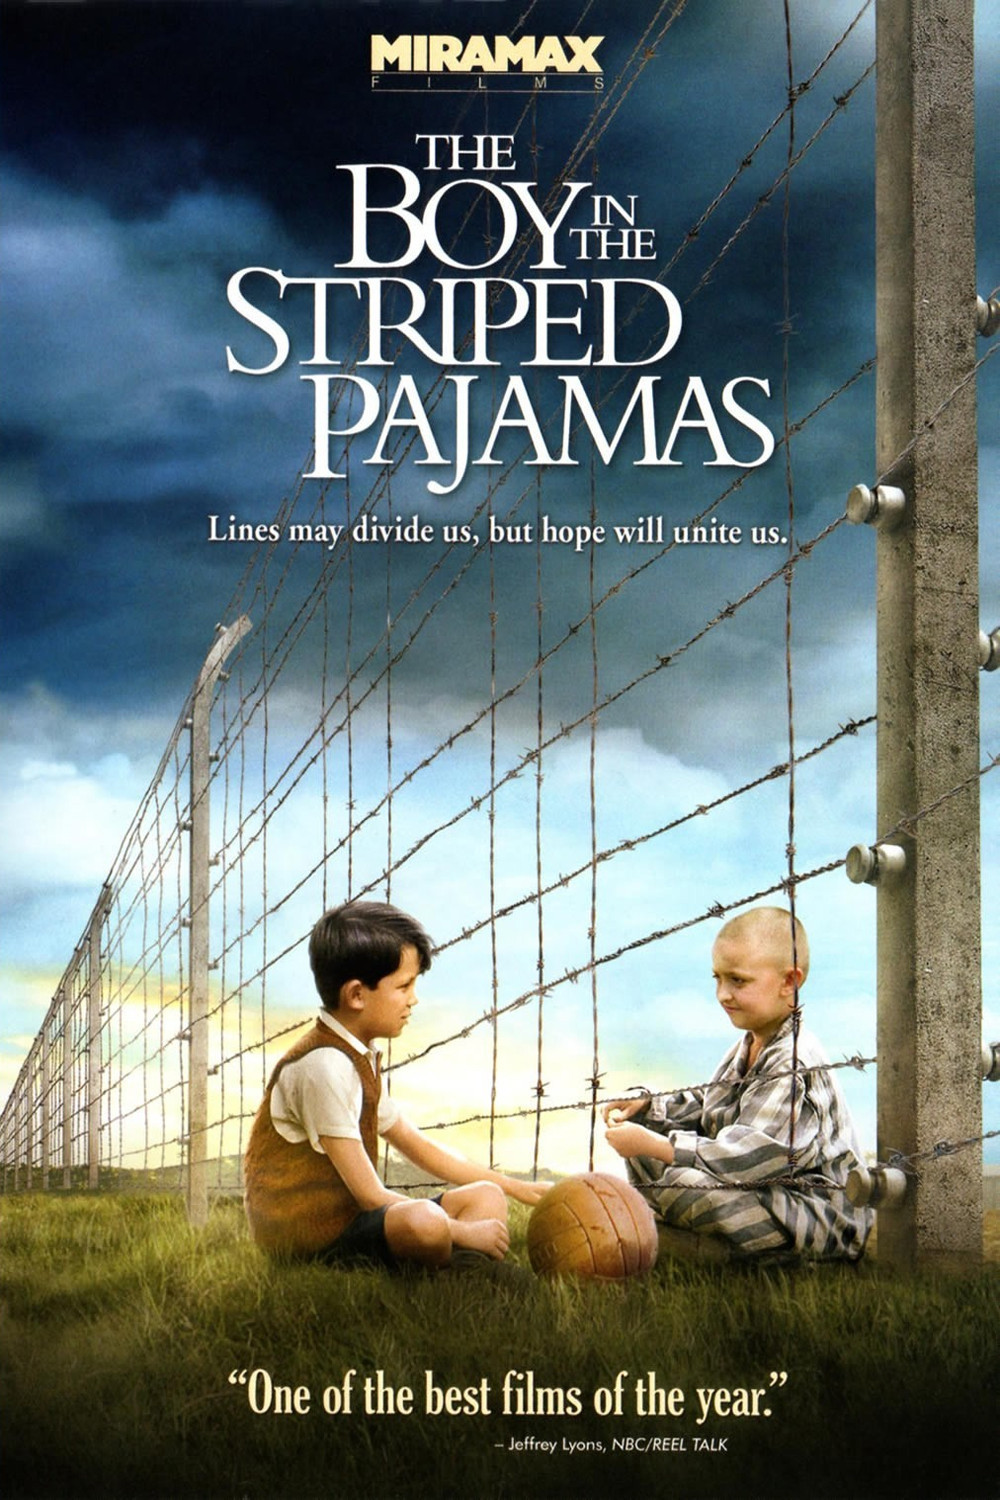 The Boy in the Striped Pyjamas: A child's awakening